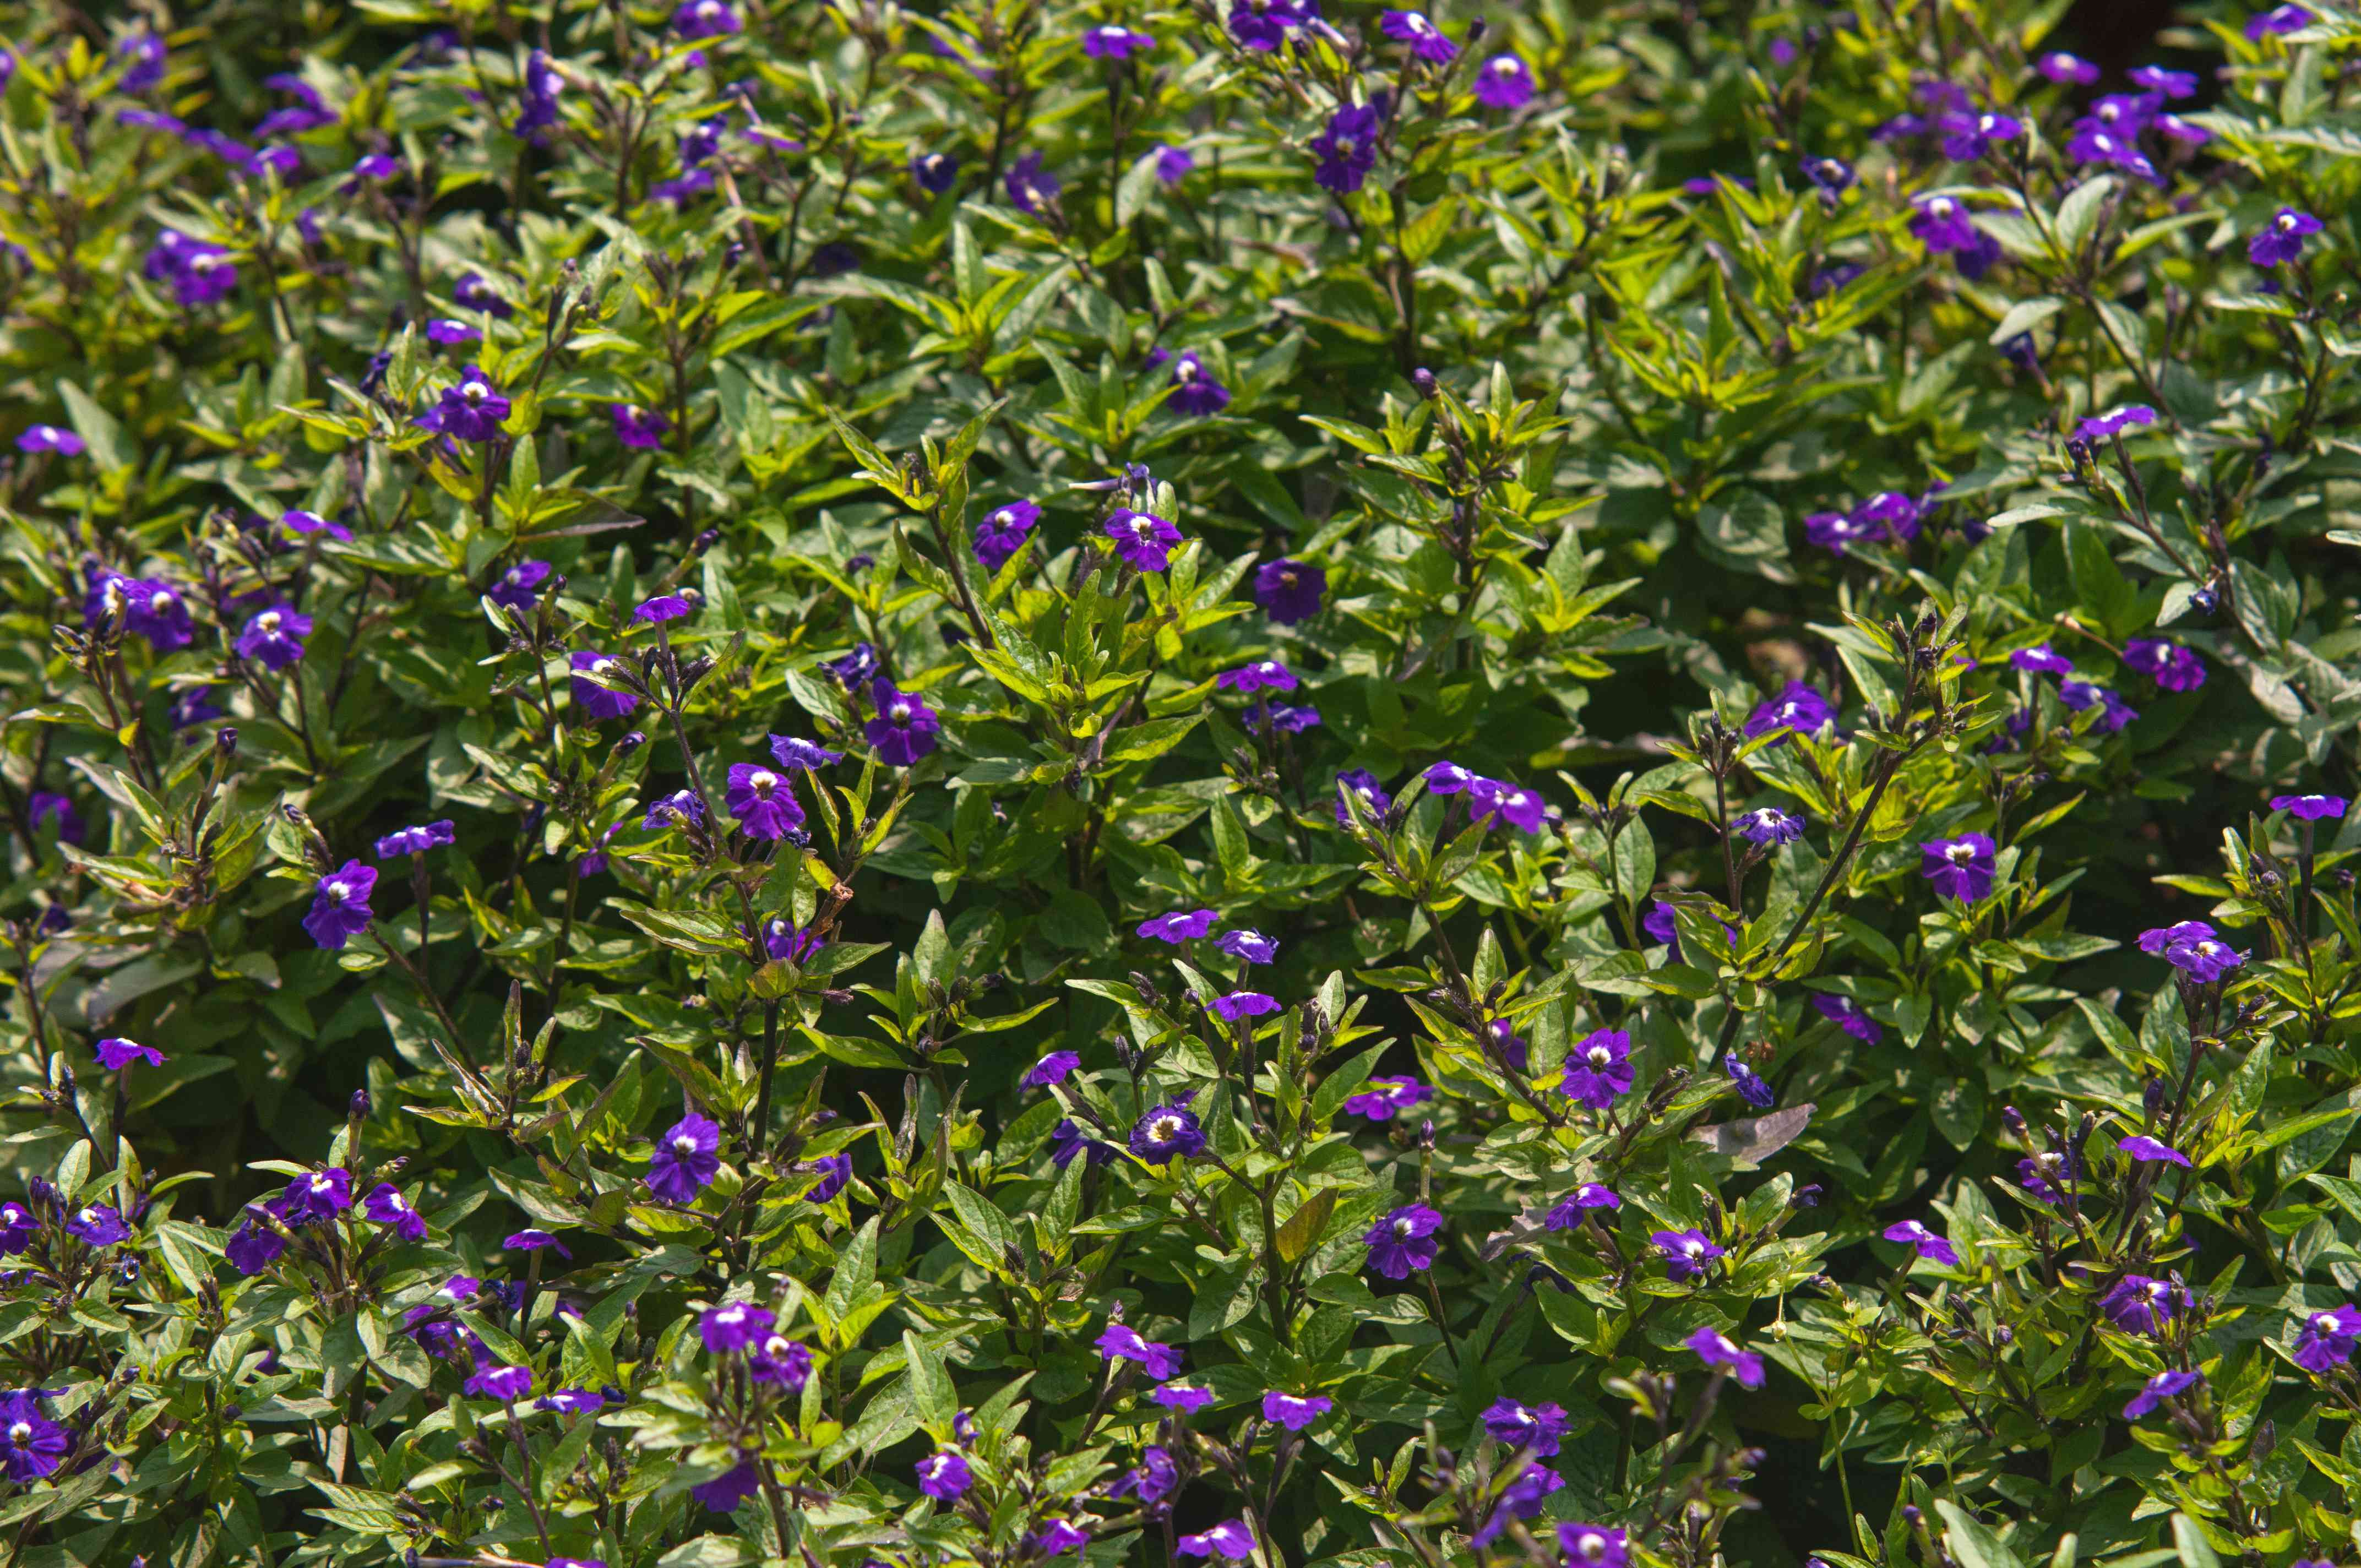 Browallia plant with deep purple flowers on bright green leaf stems in sunlight